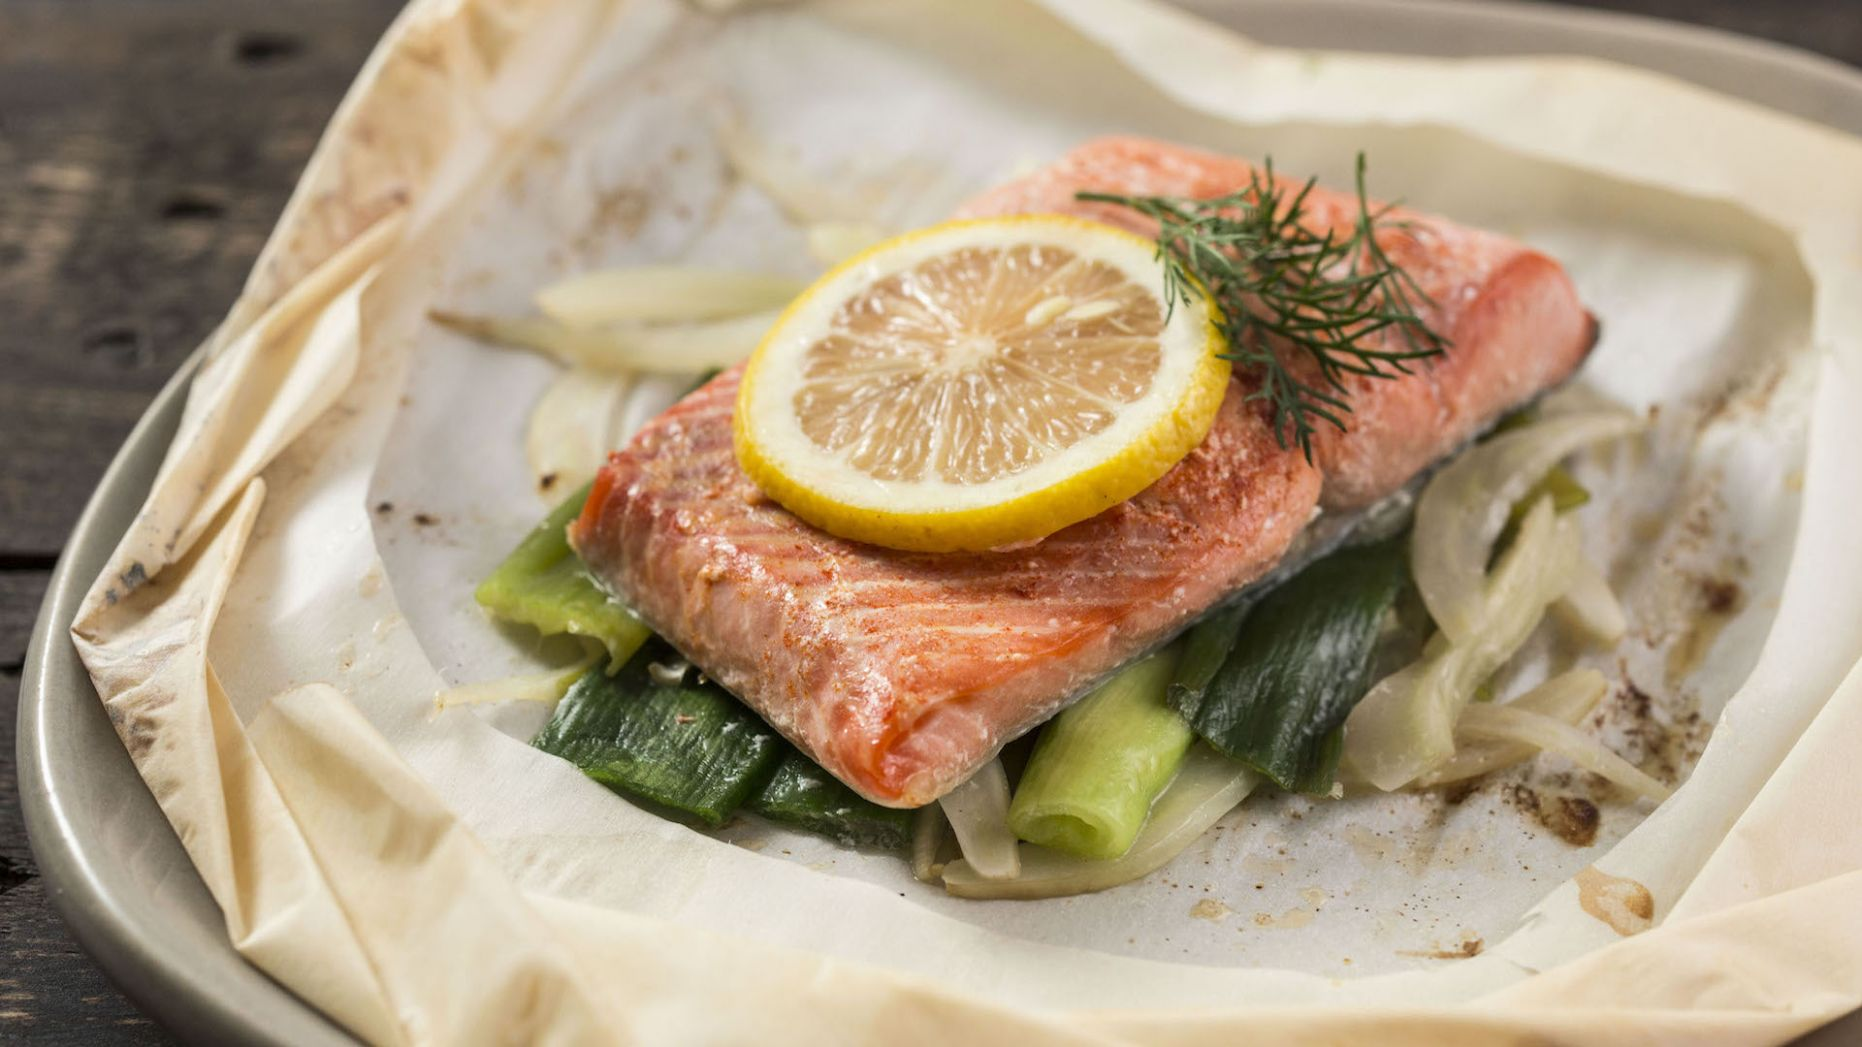 Salmon in a Parchment Bag